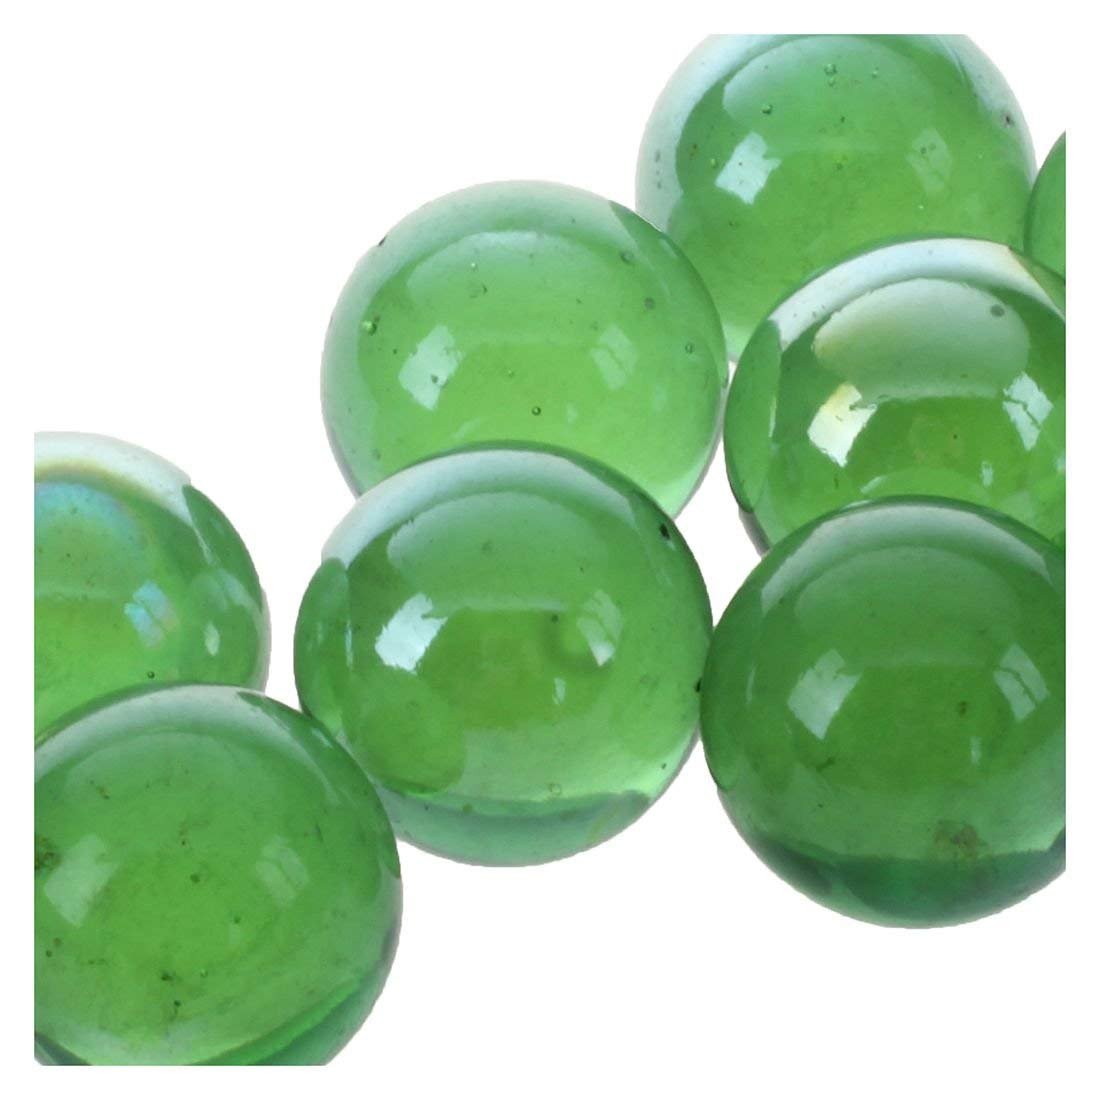 Tcplyn Premium Quality Glass Marbles - 10 Pcs Marbles 16mm Glass Marbles Knicker Glass Balls Decoration Color Nuggets Toy Green by Tcplyn (Image #2)